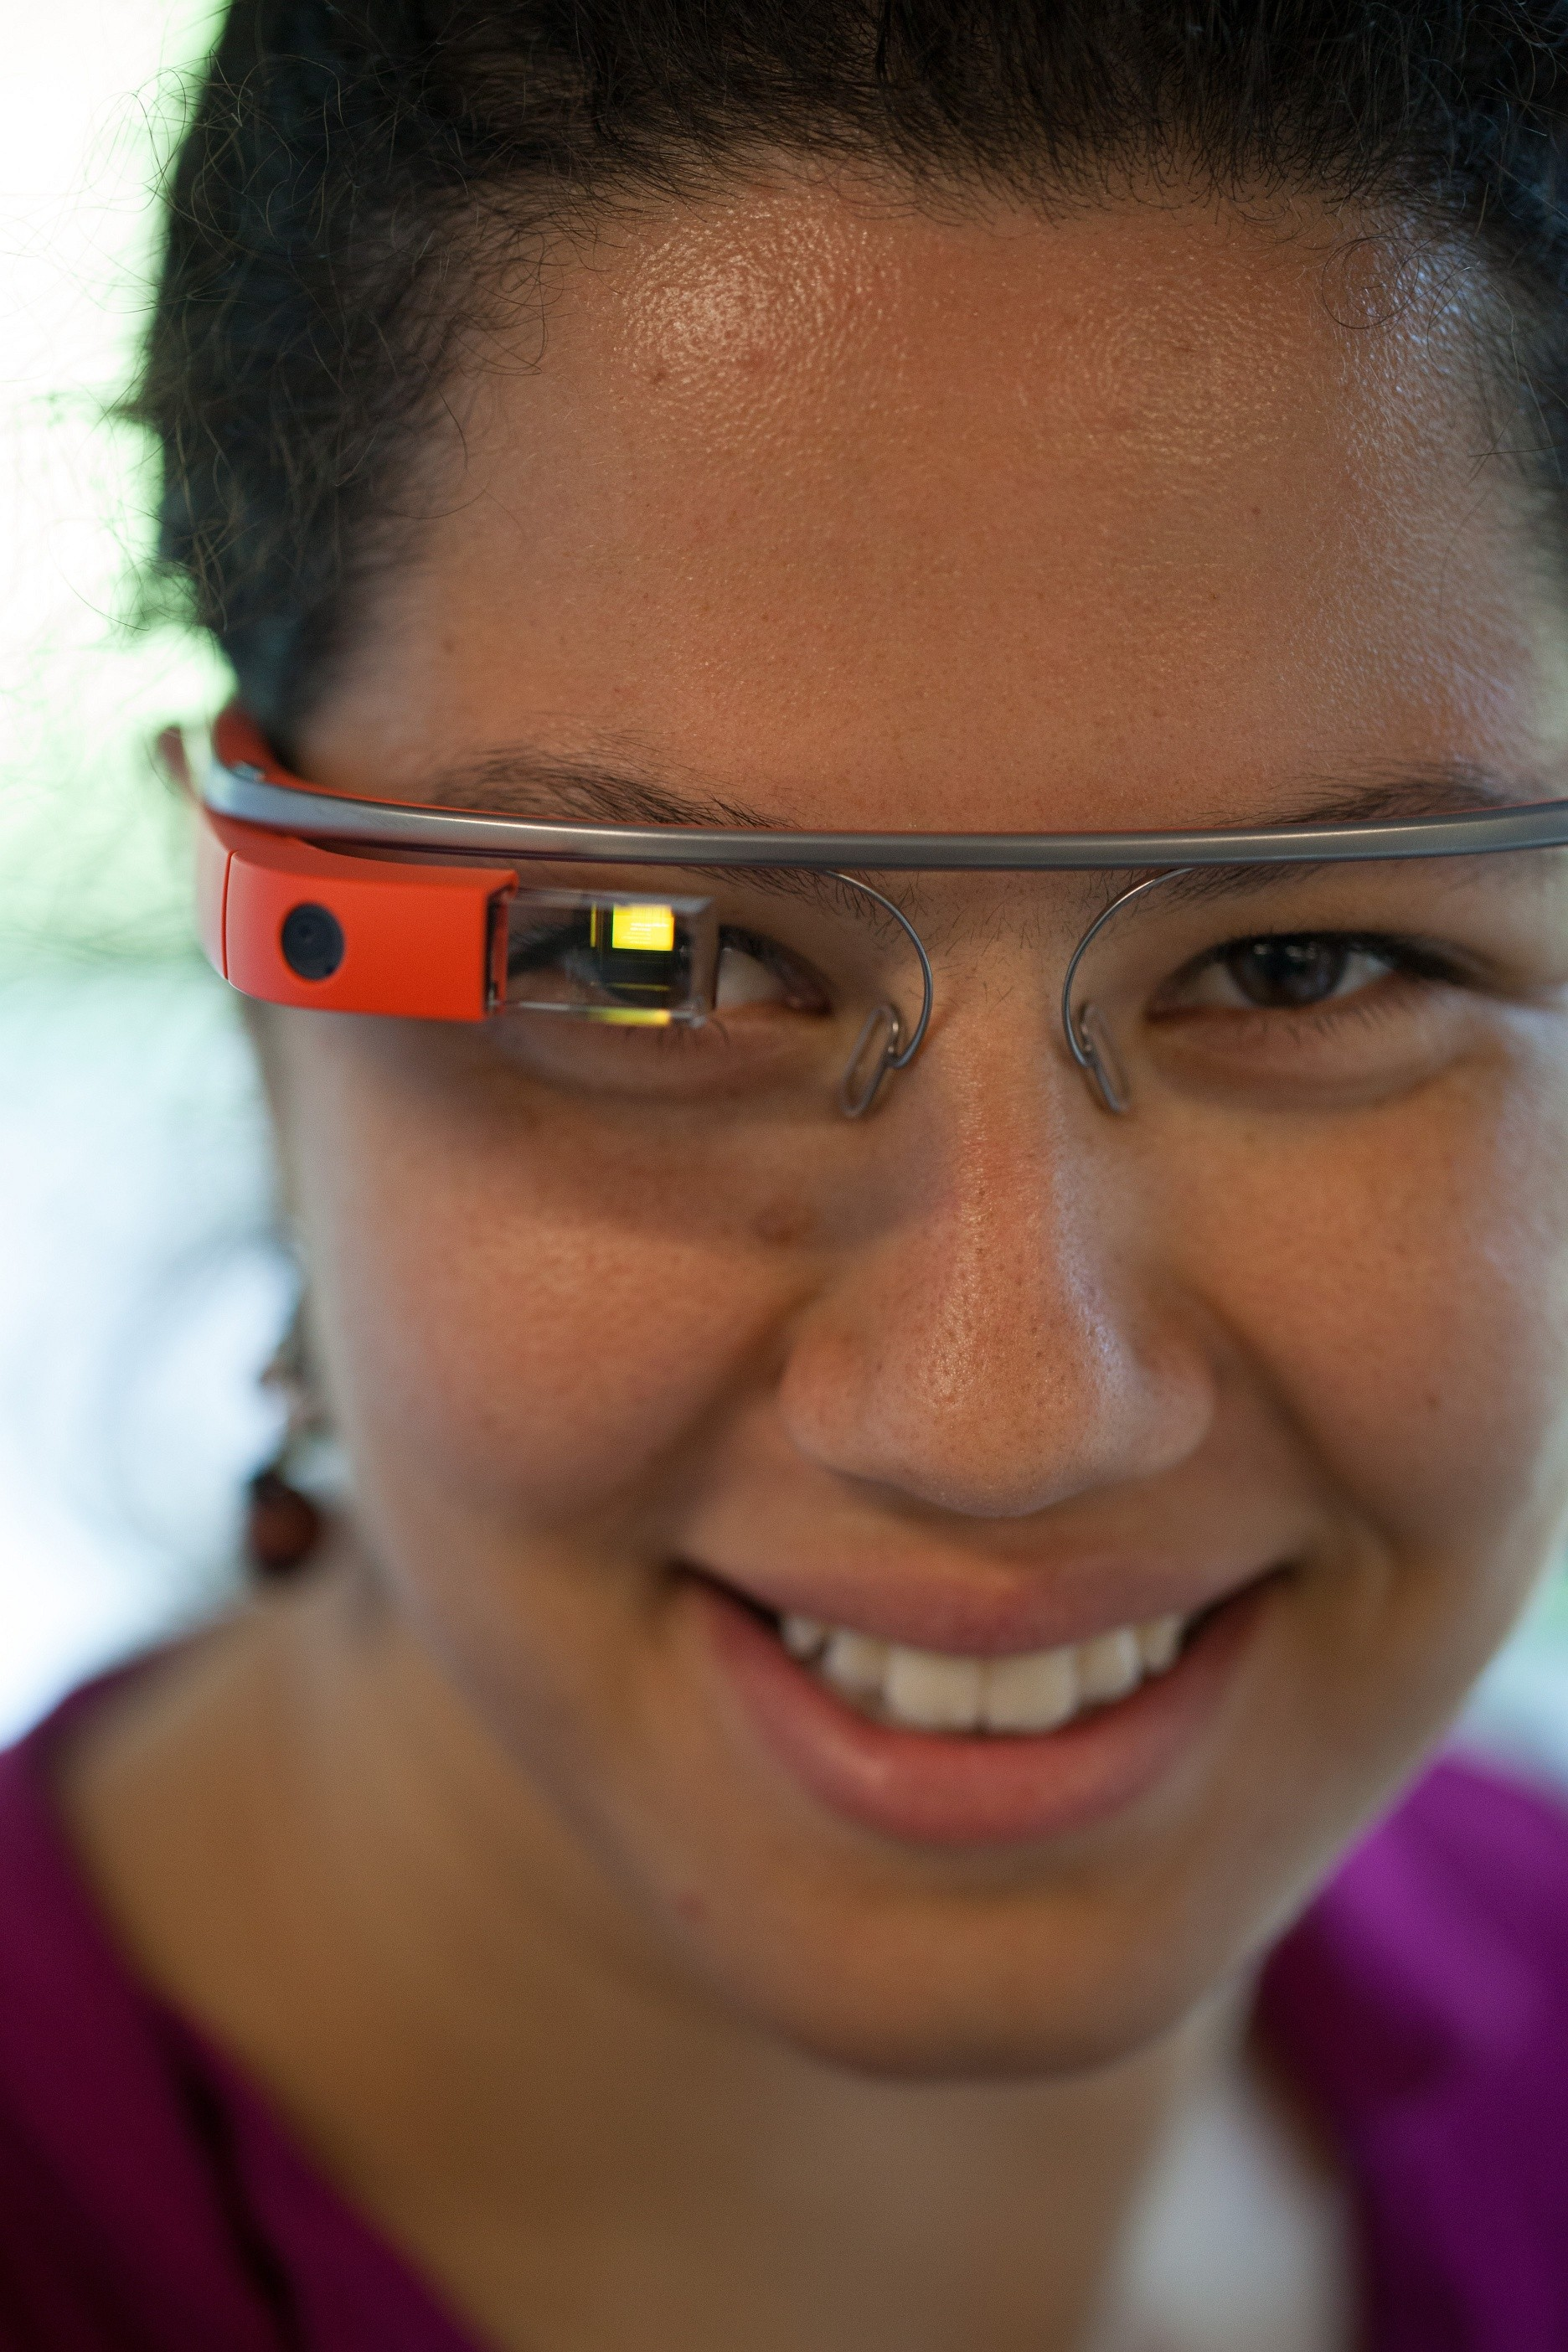 A woman with Google Glass on.